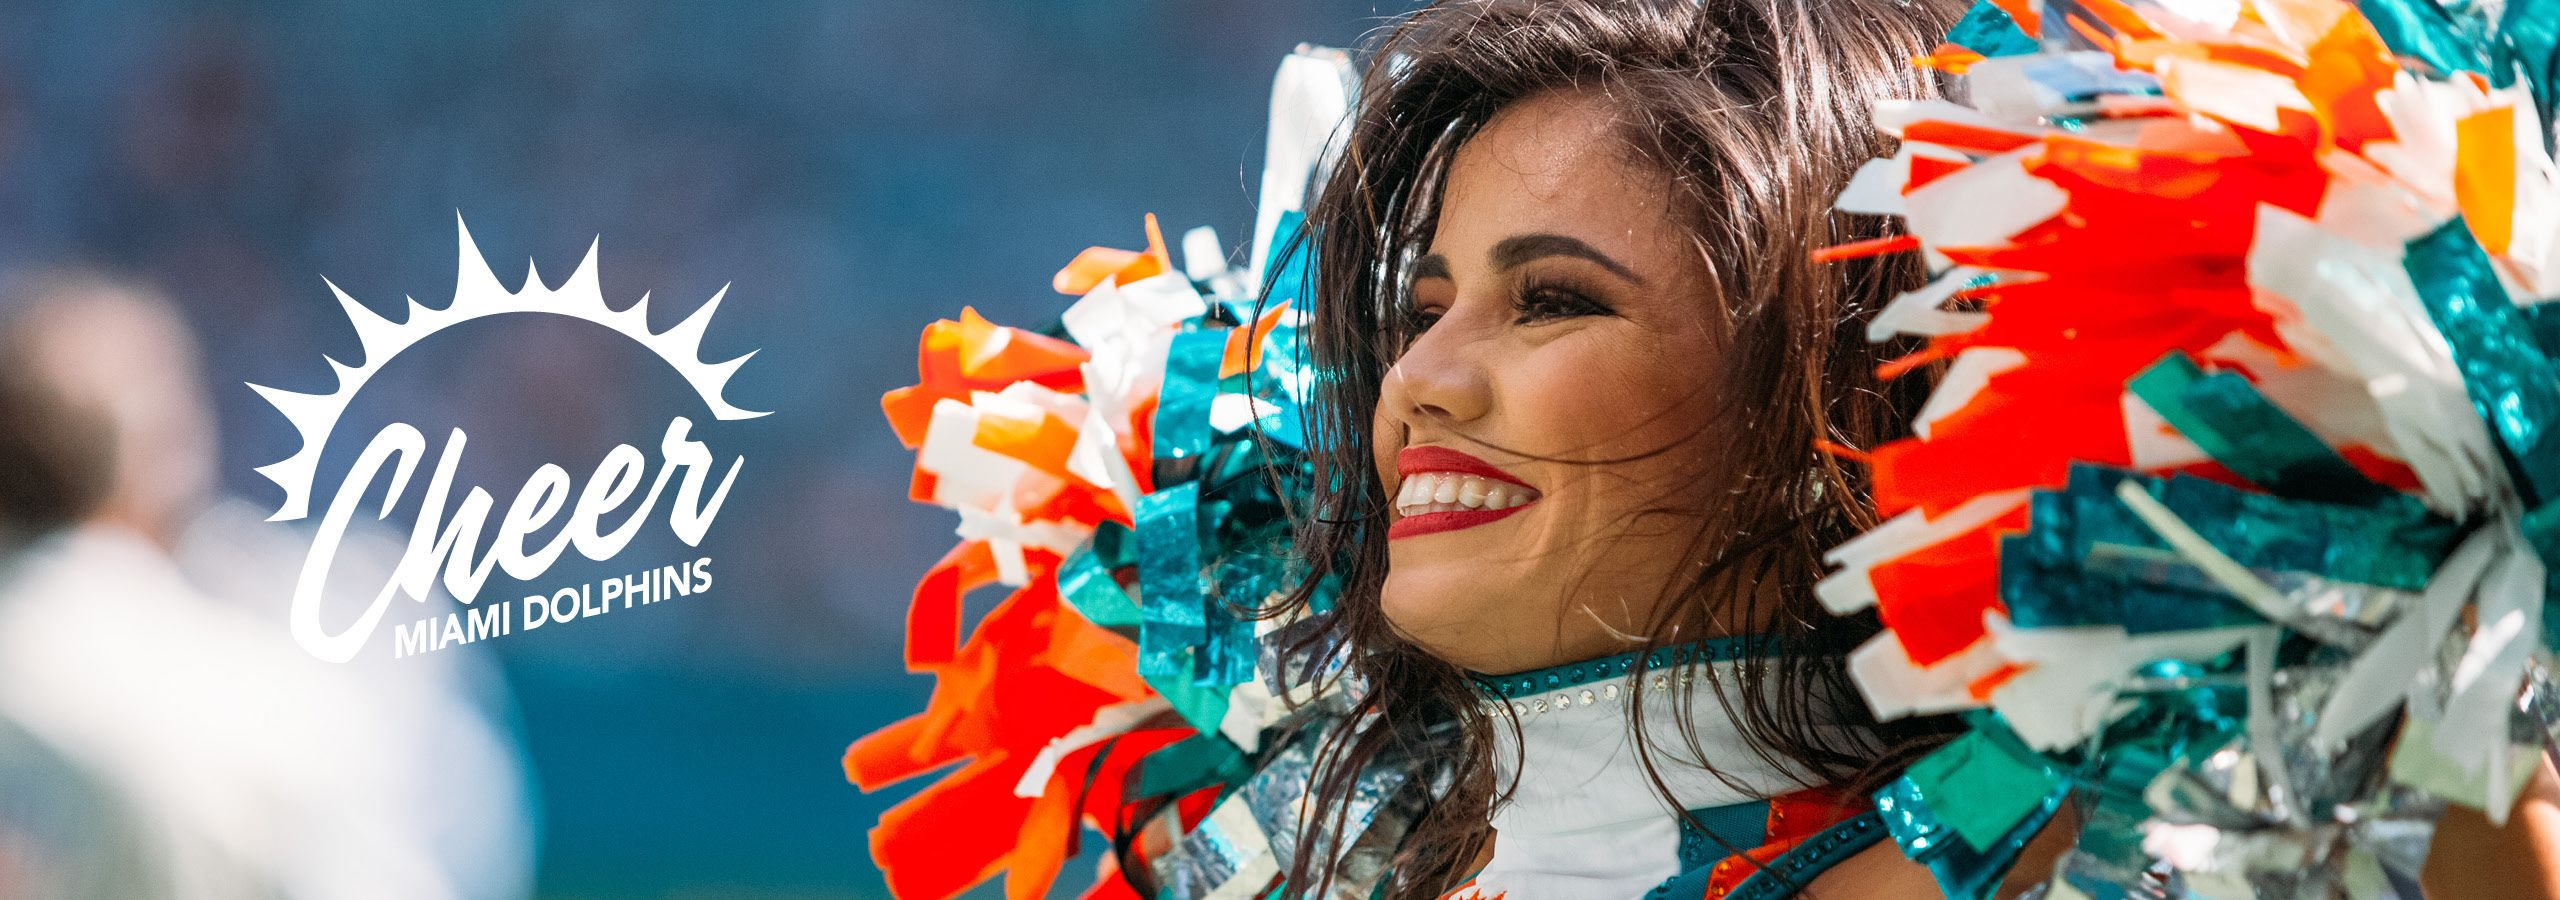 Header Graphic: Miami Dolphins Cheer Logo